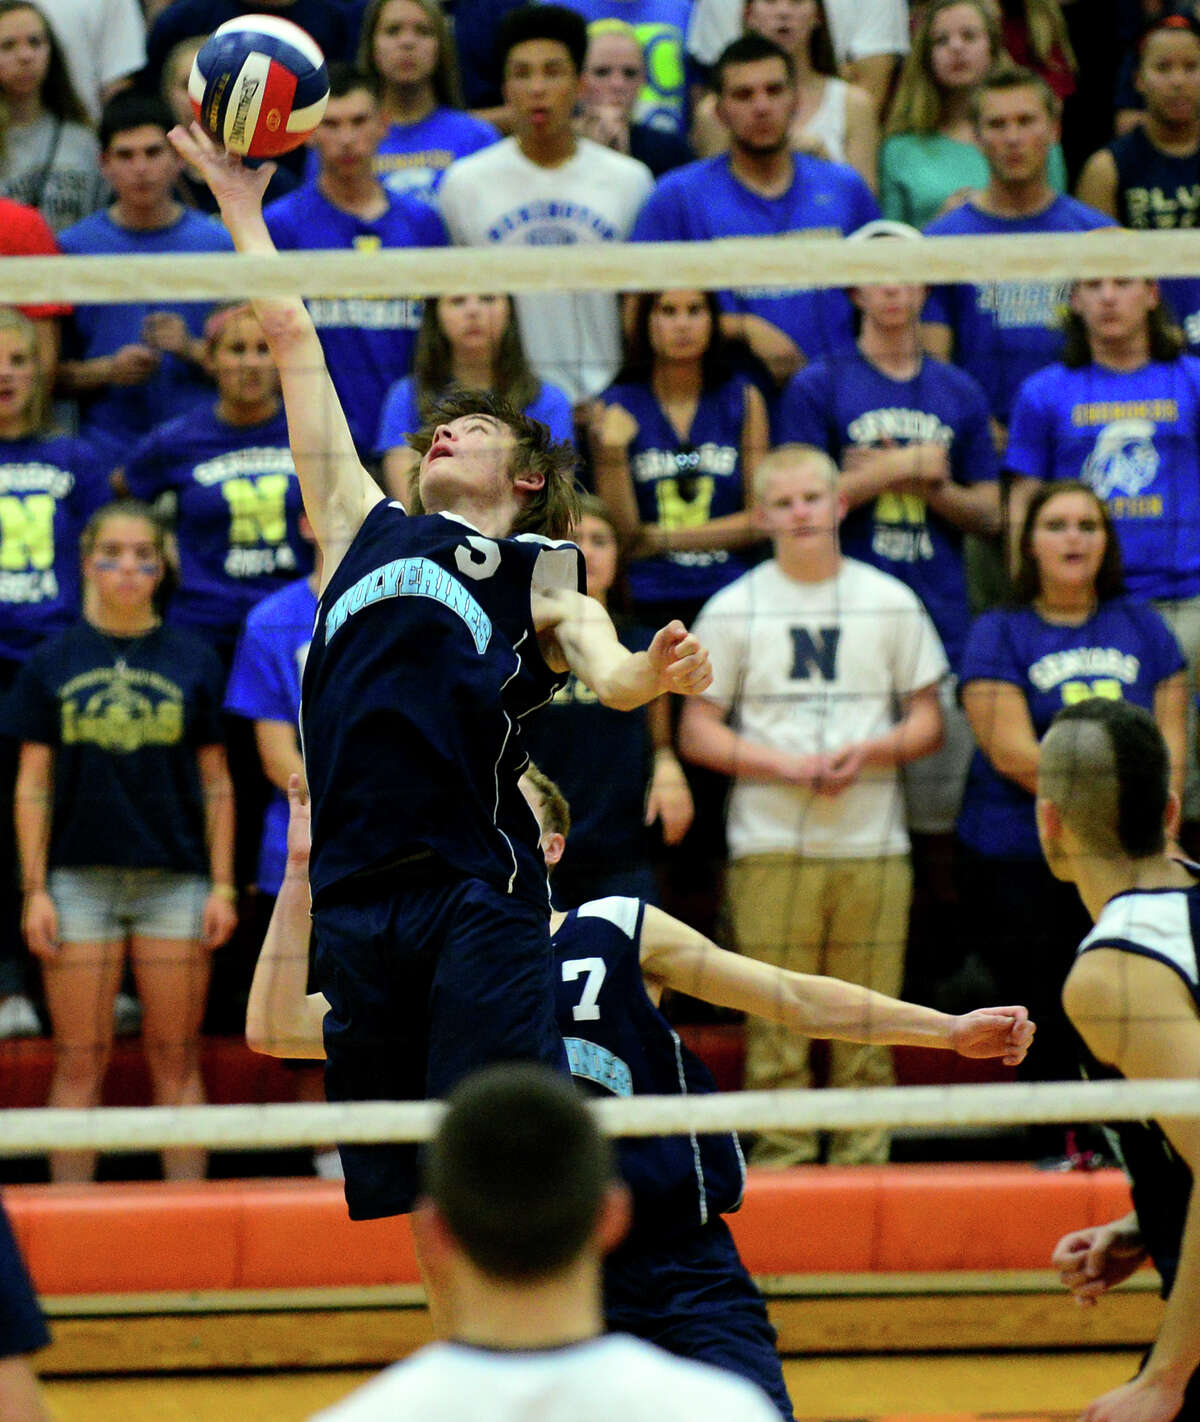 Class M Volleybal Championship action between Oxford and Newington in Shelton, Conn. on Friday June 13, 2014.